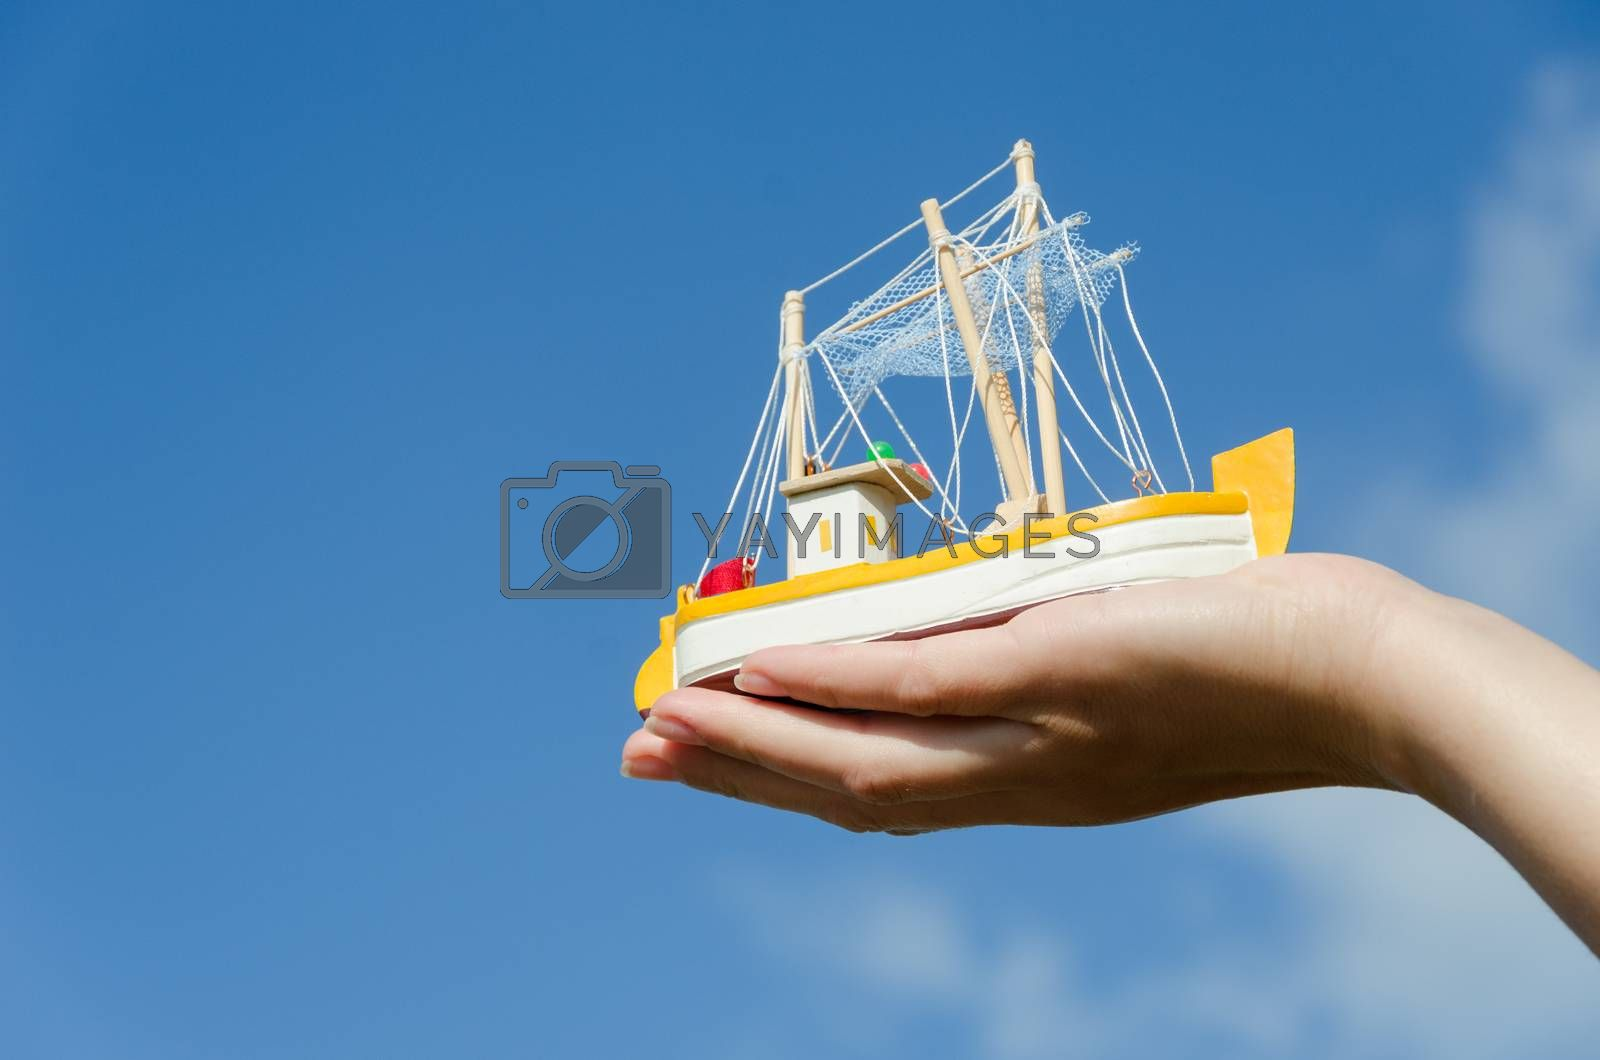 wooden retro ship miniature toy on female palm on blue sky background